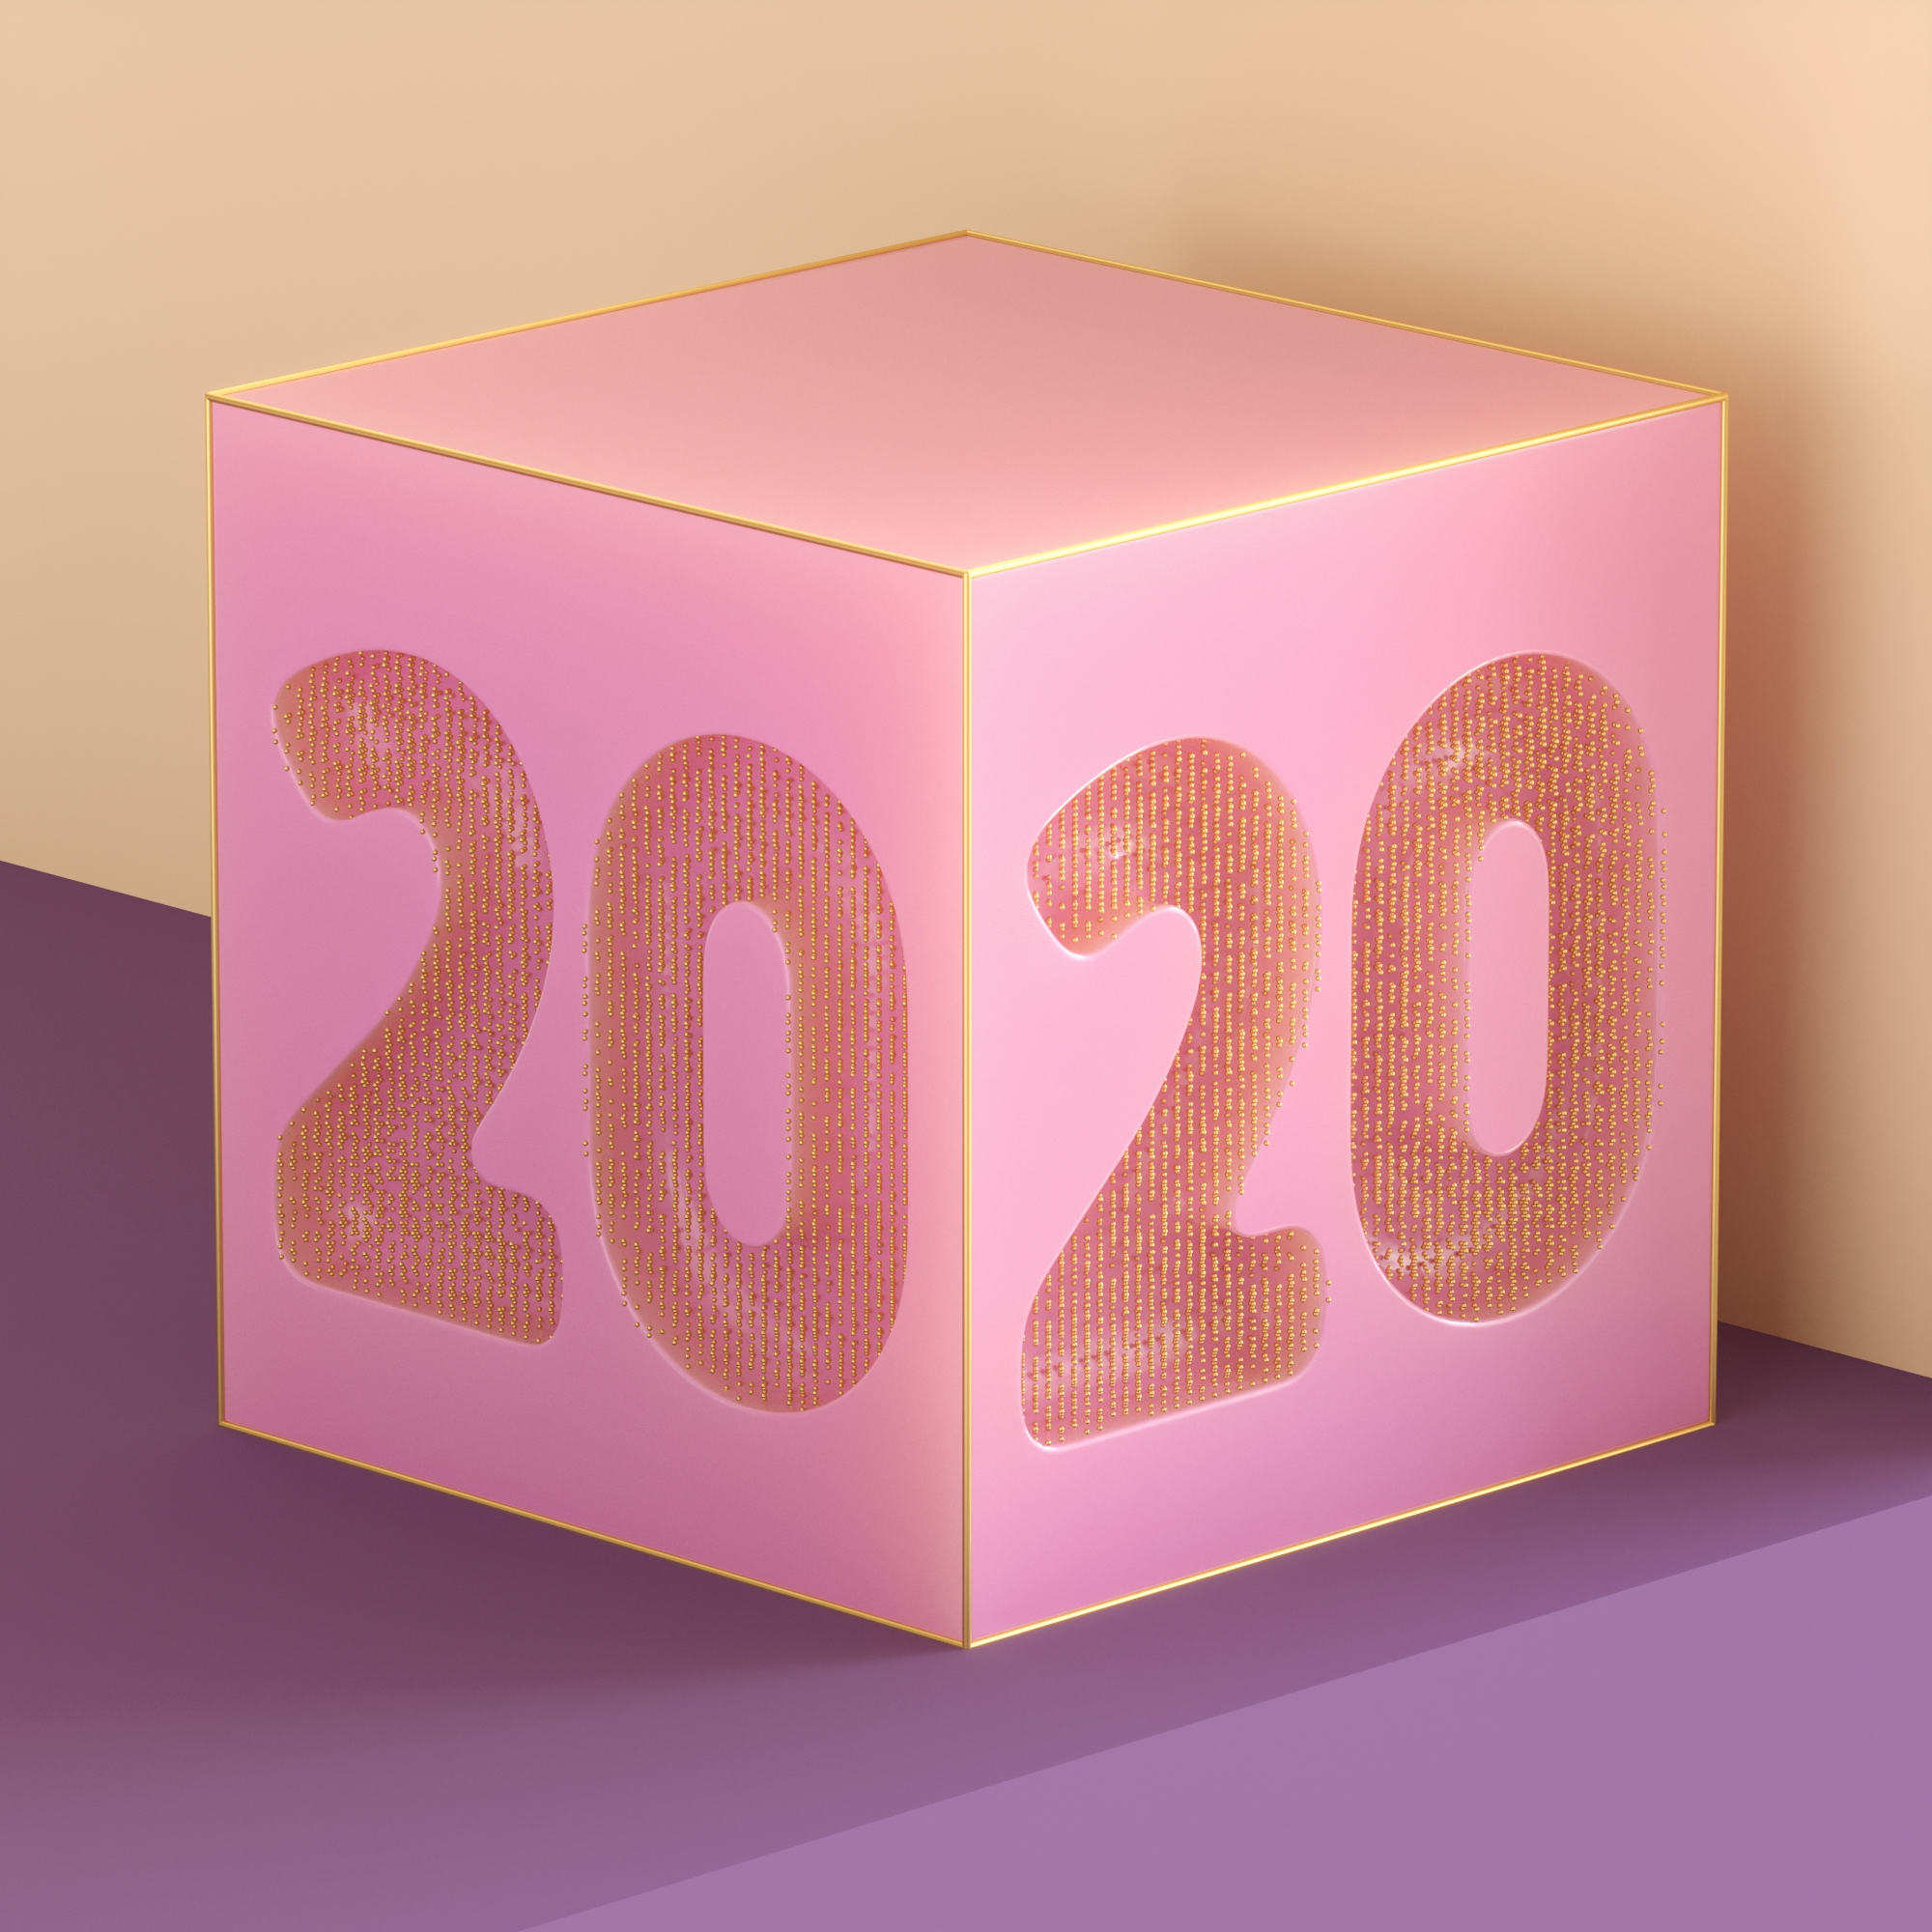 2020. hope great  - 3d, abstract - ionsounds   ello